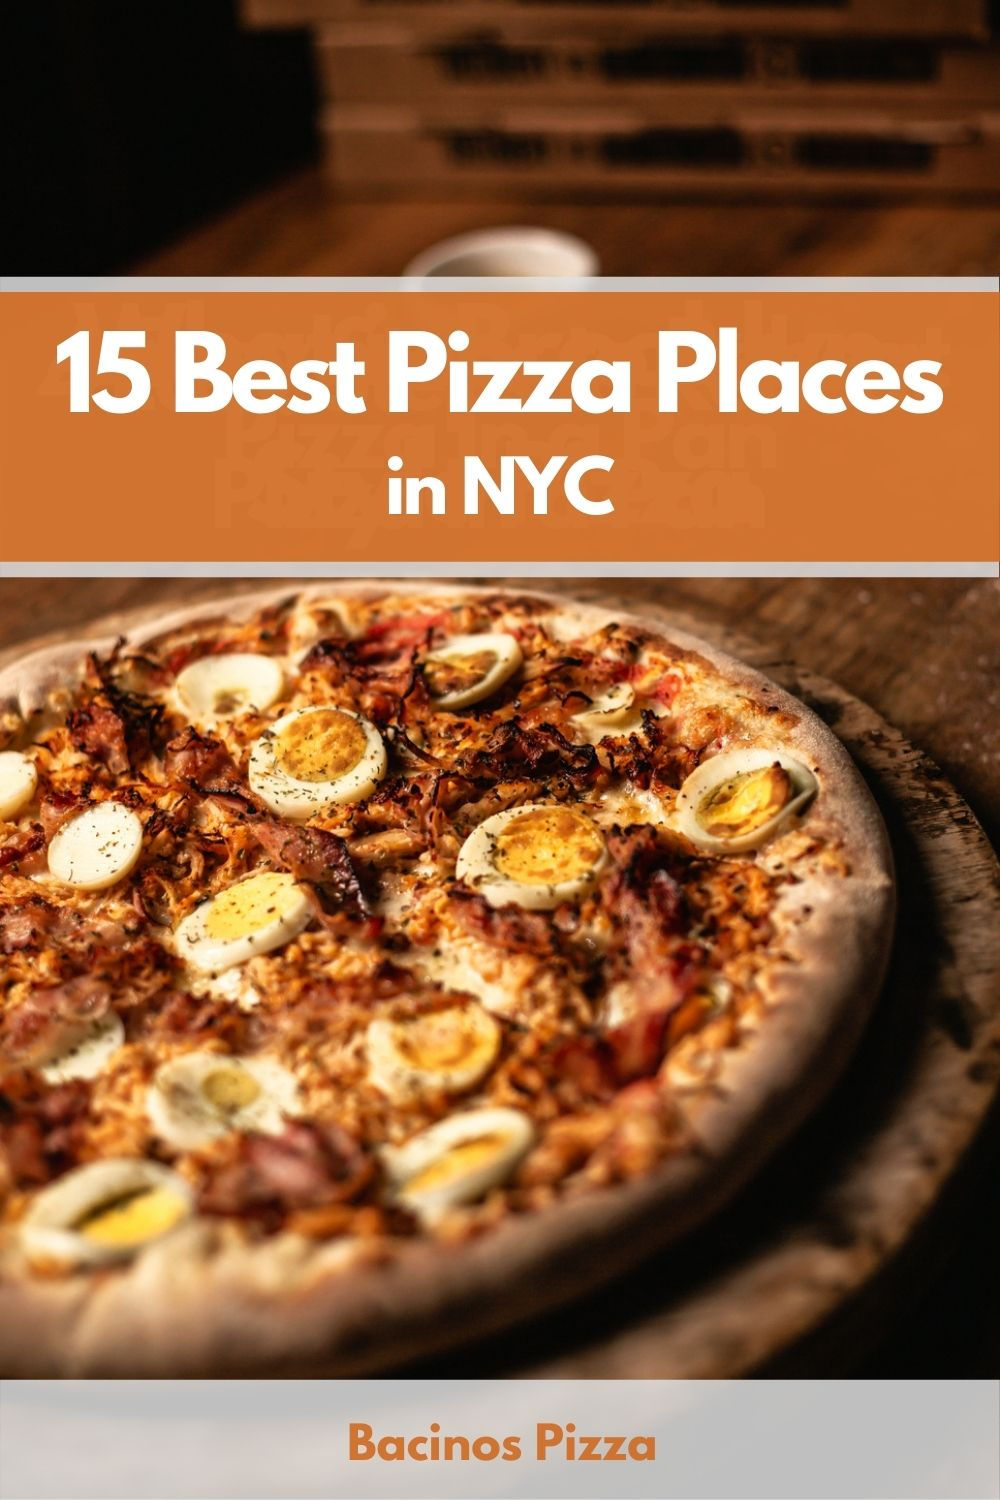 15 Best Pizza Places in NYC pin